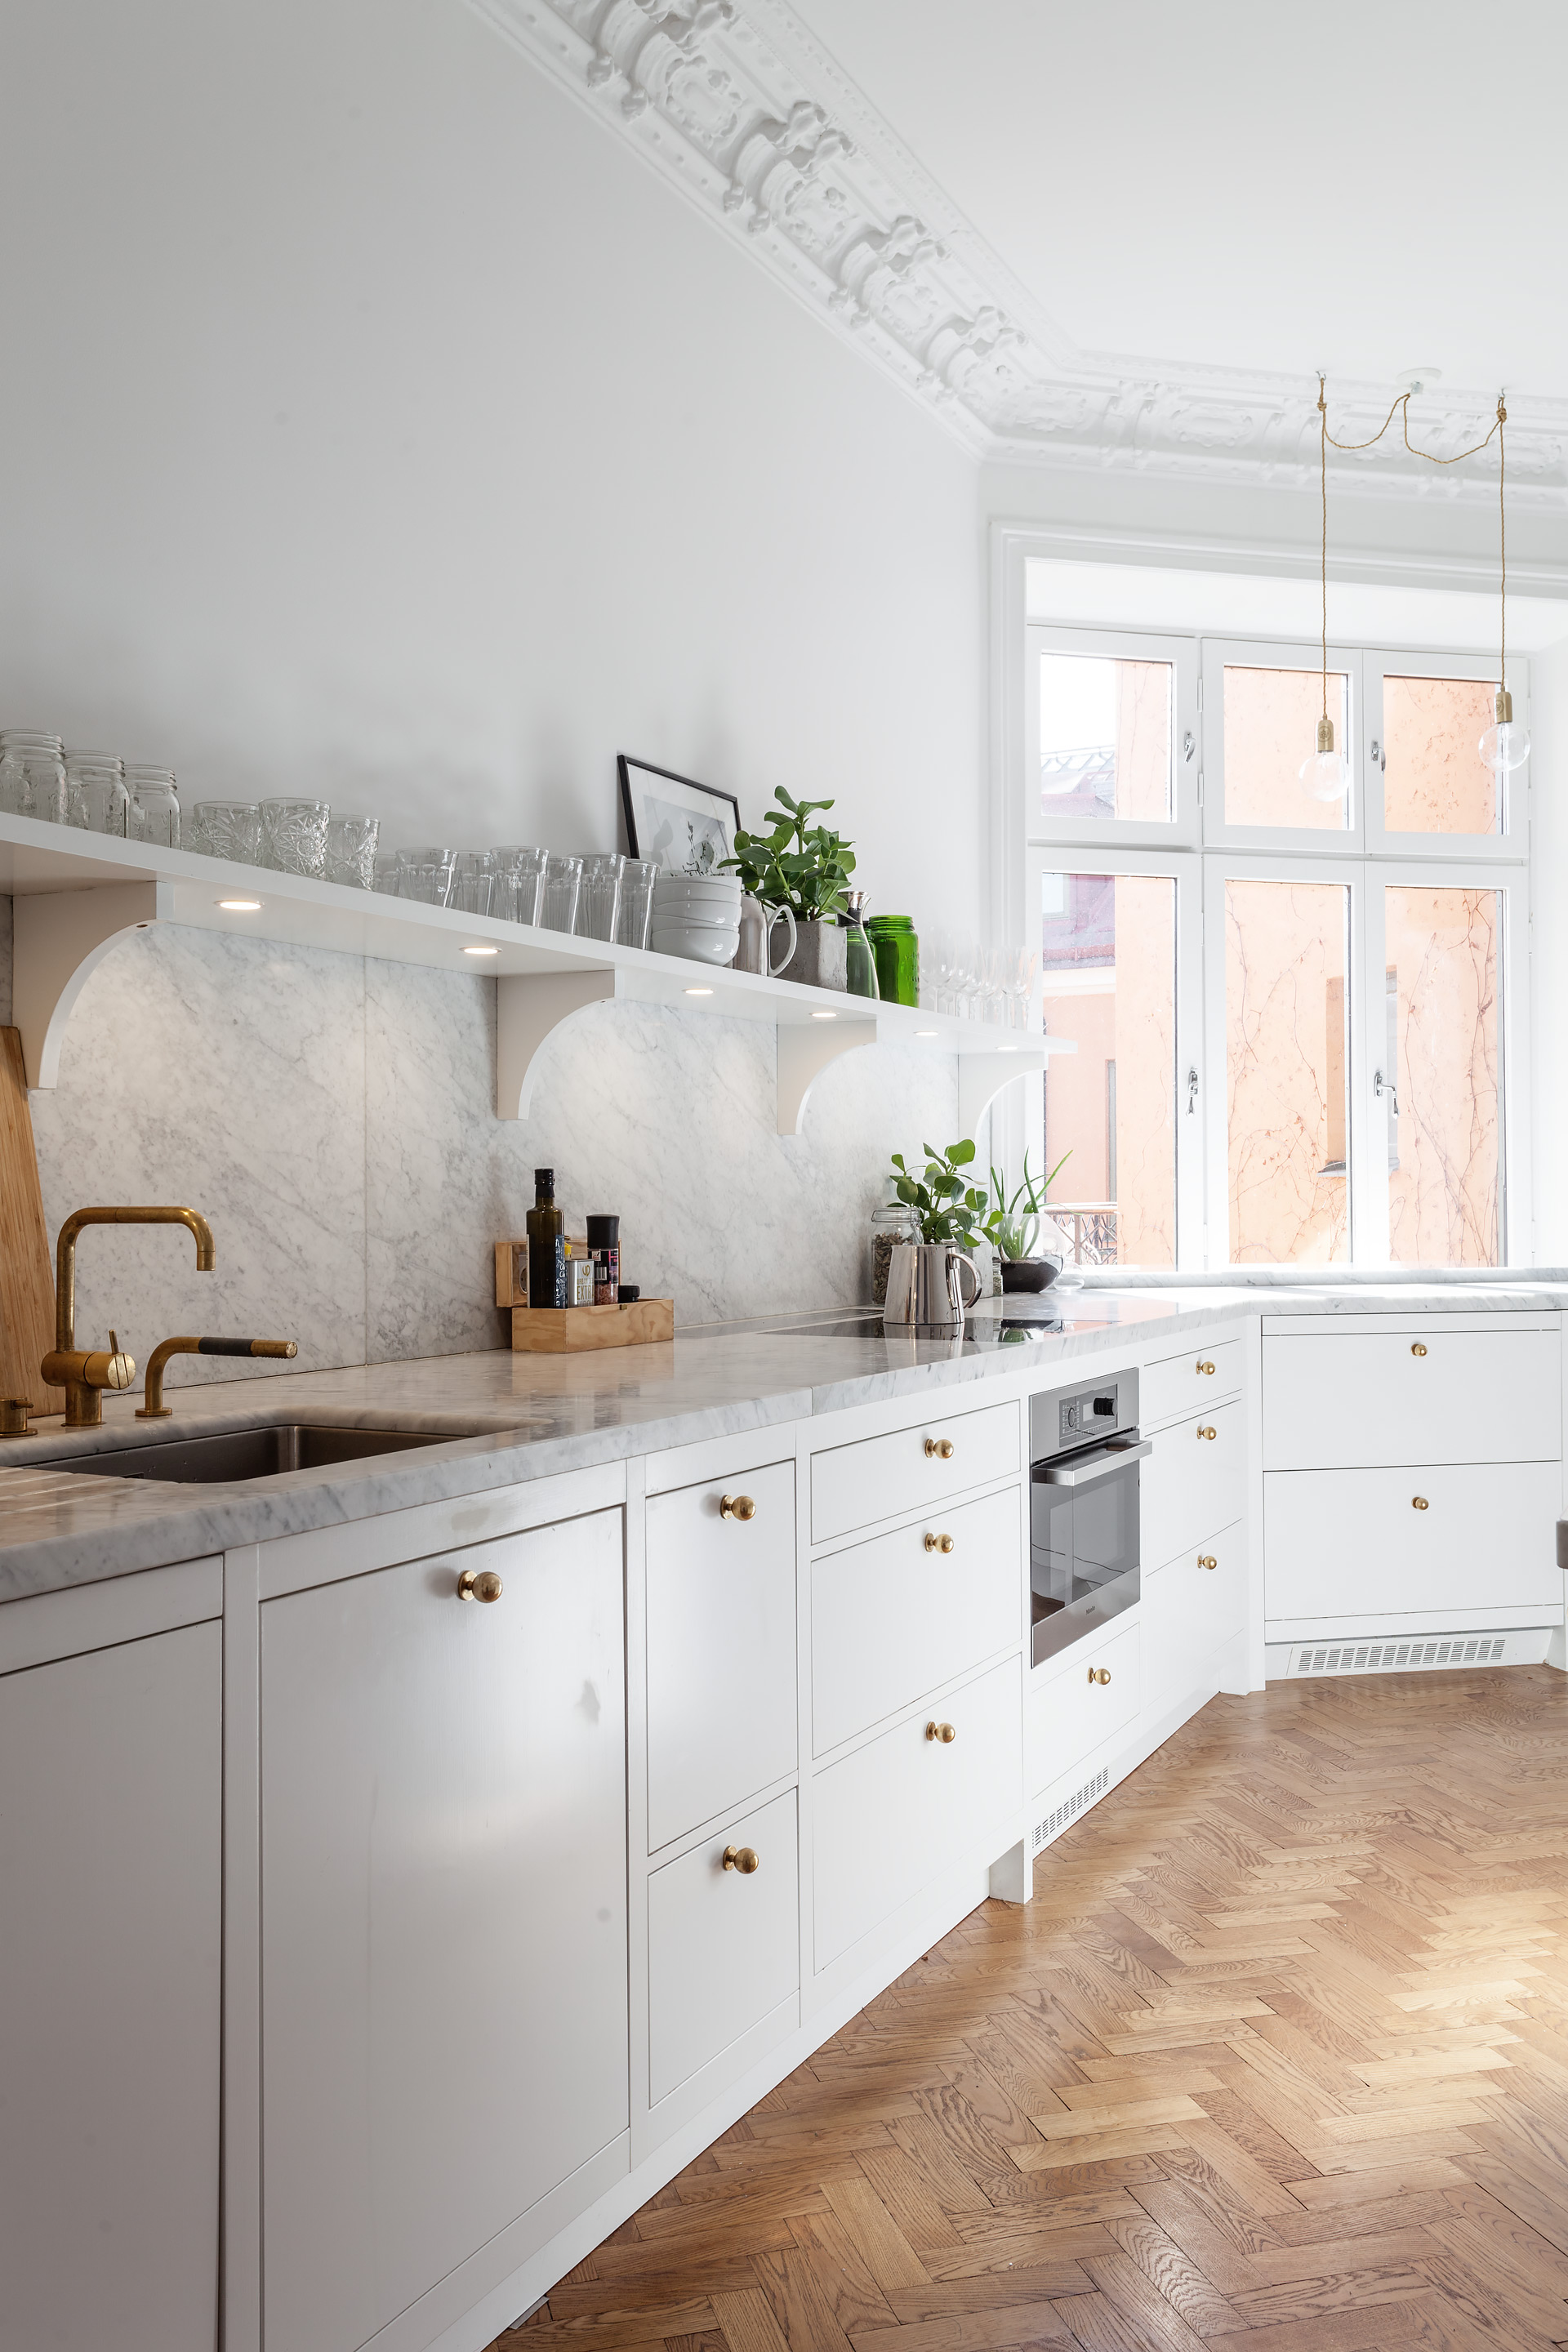 White, marble and brass in the kitchen.